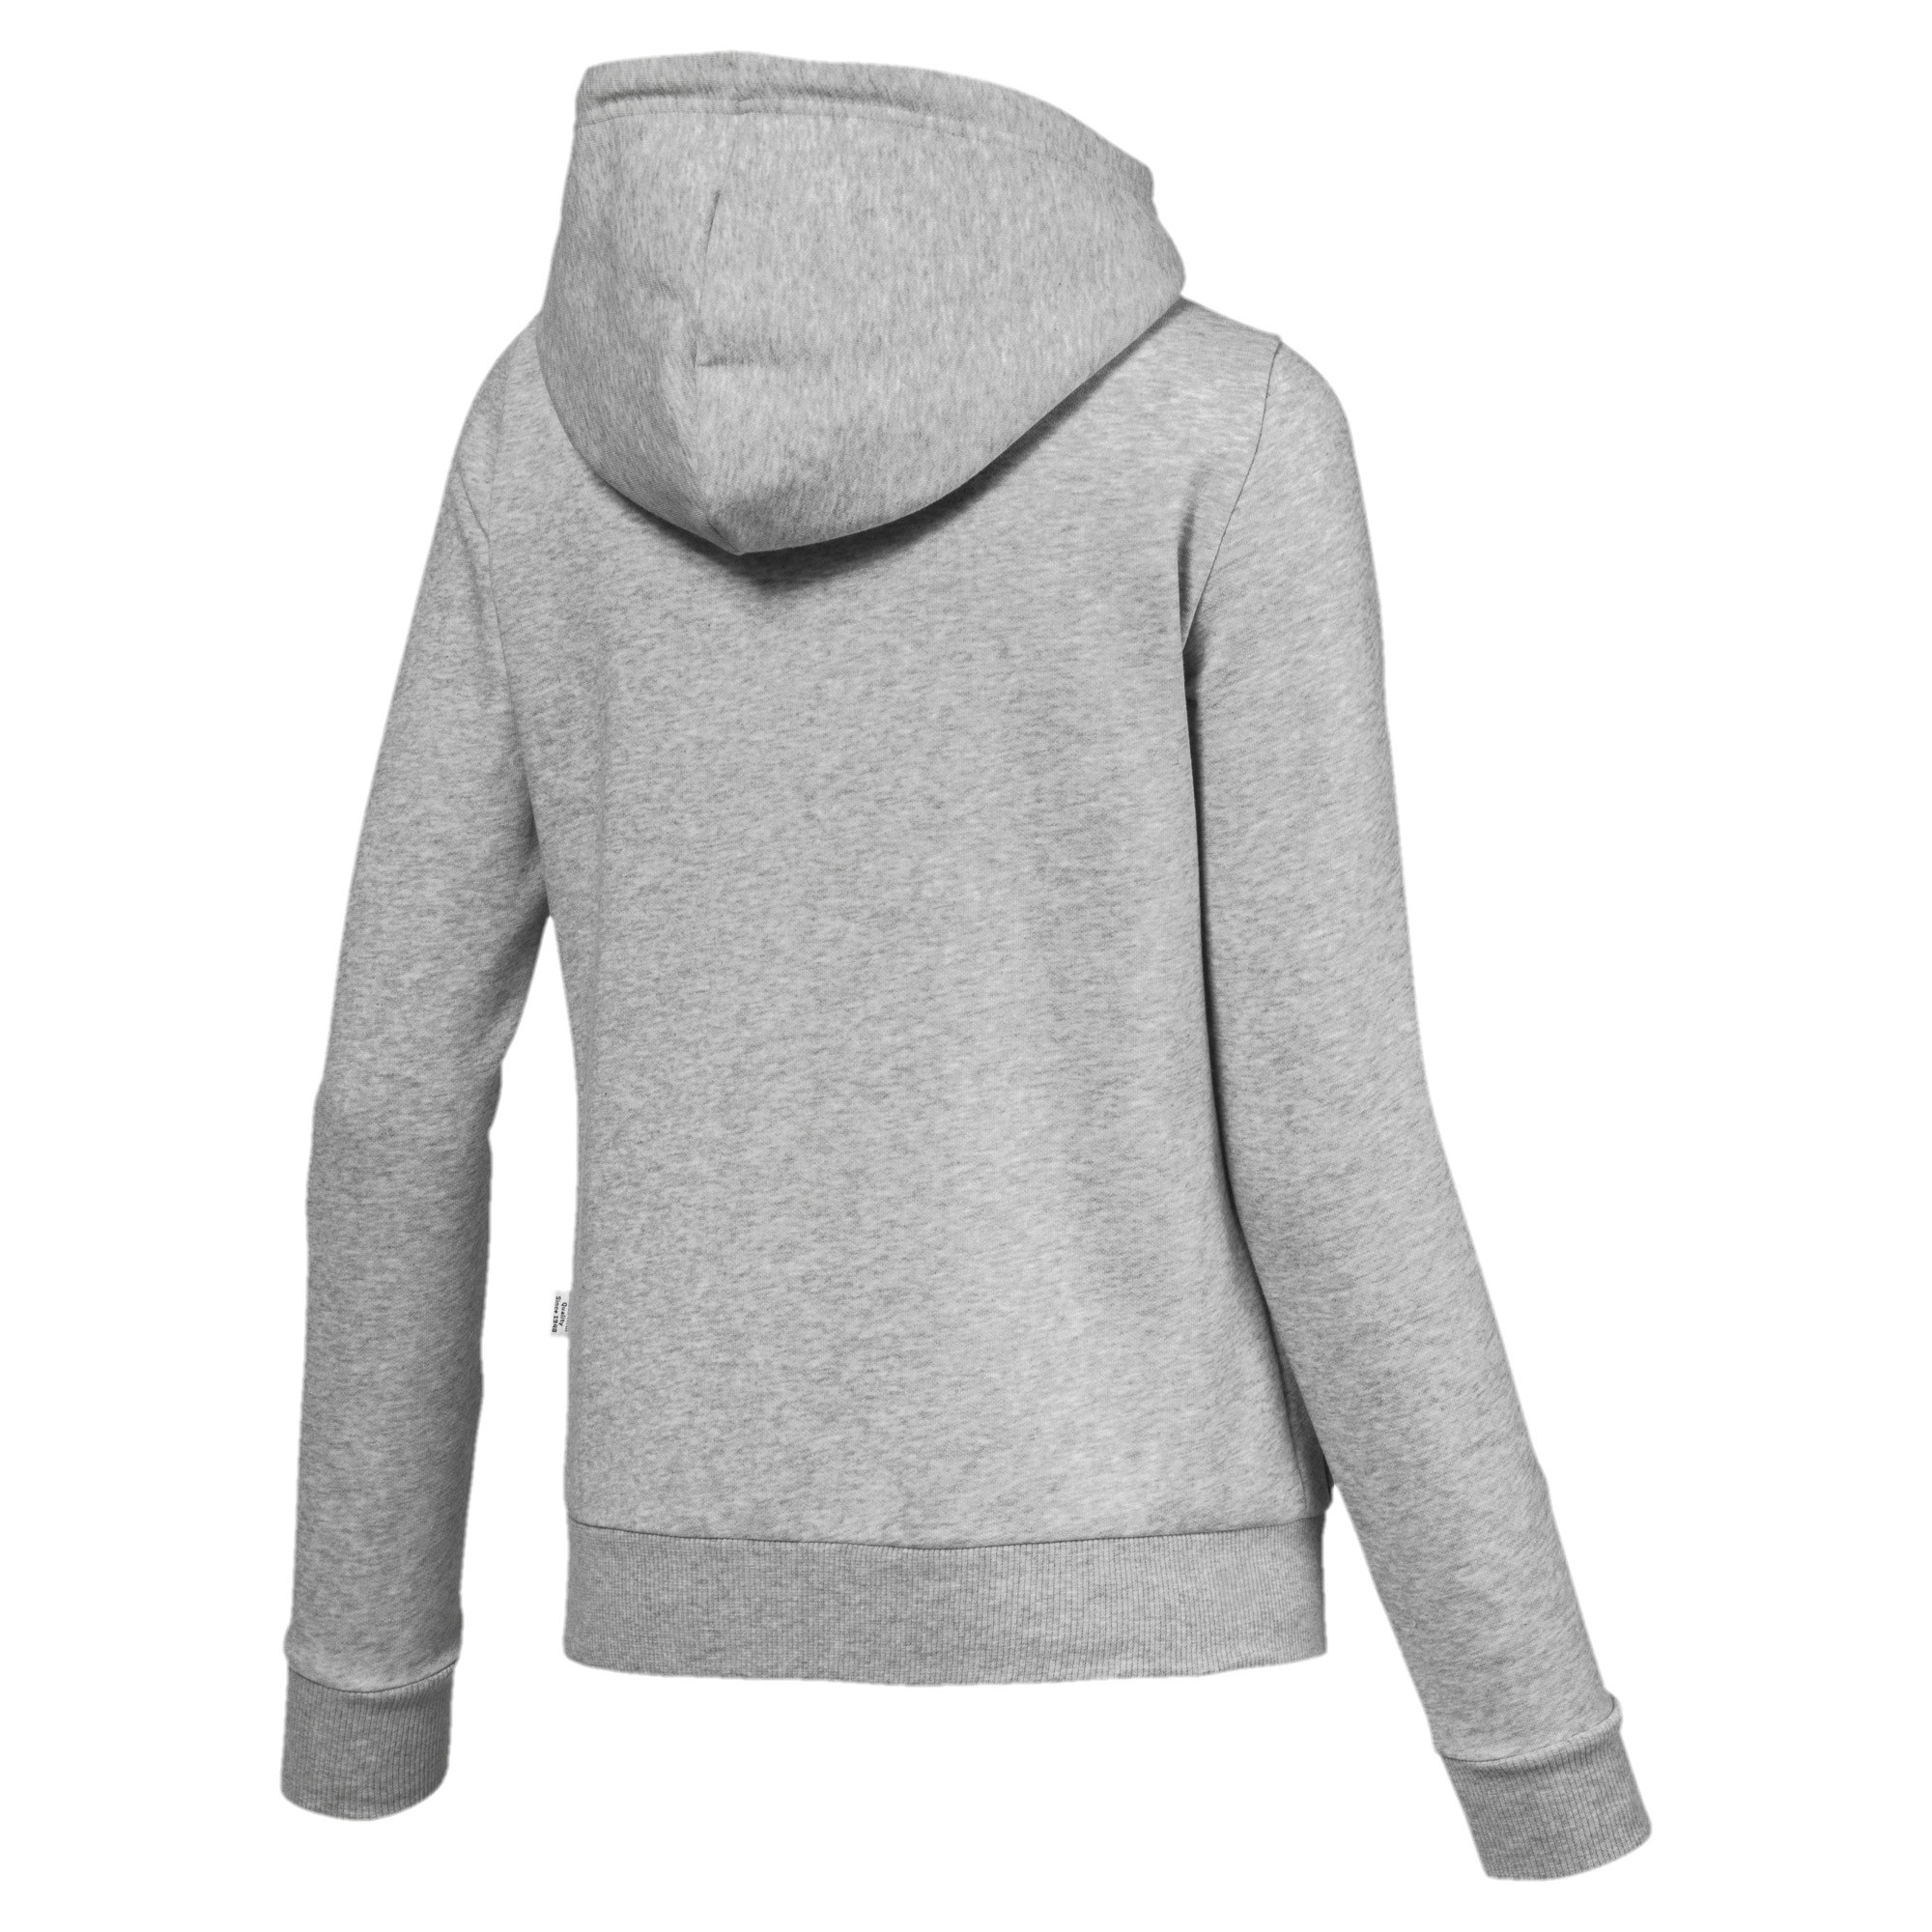 PUMA-Women-039-s-Essential-Fleece-Hooded-Jacket-Women-Sweat-Basics thumbnail 9